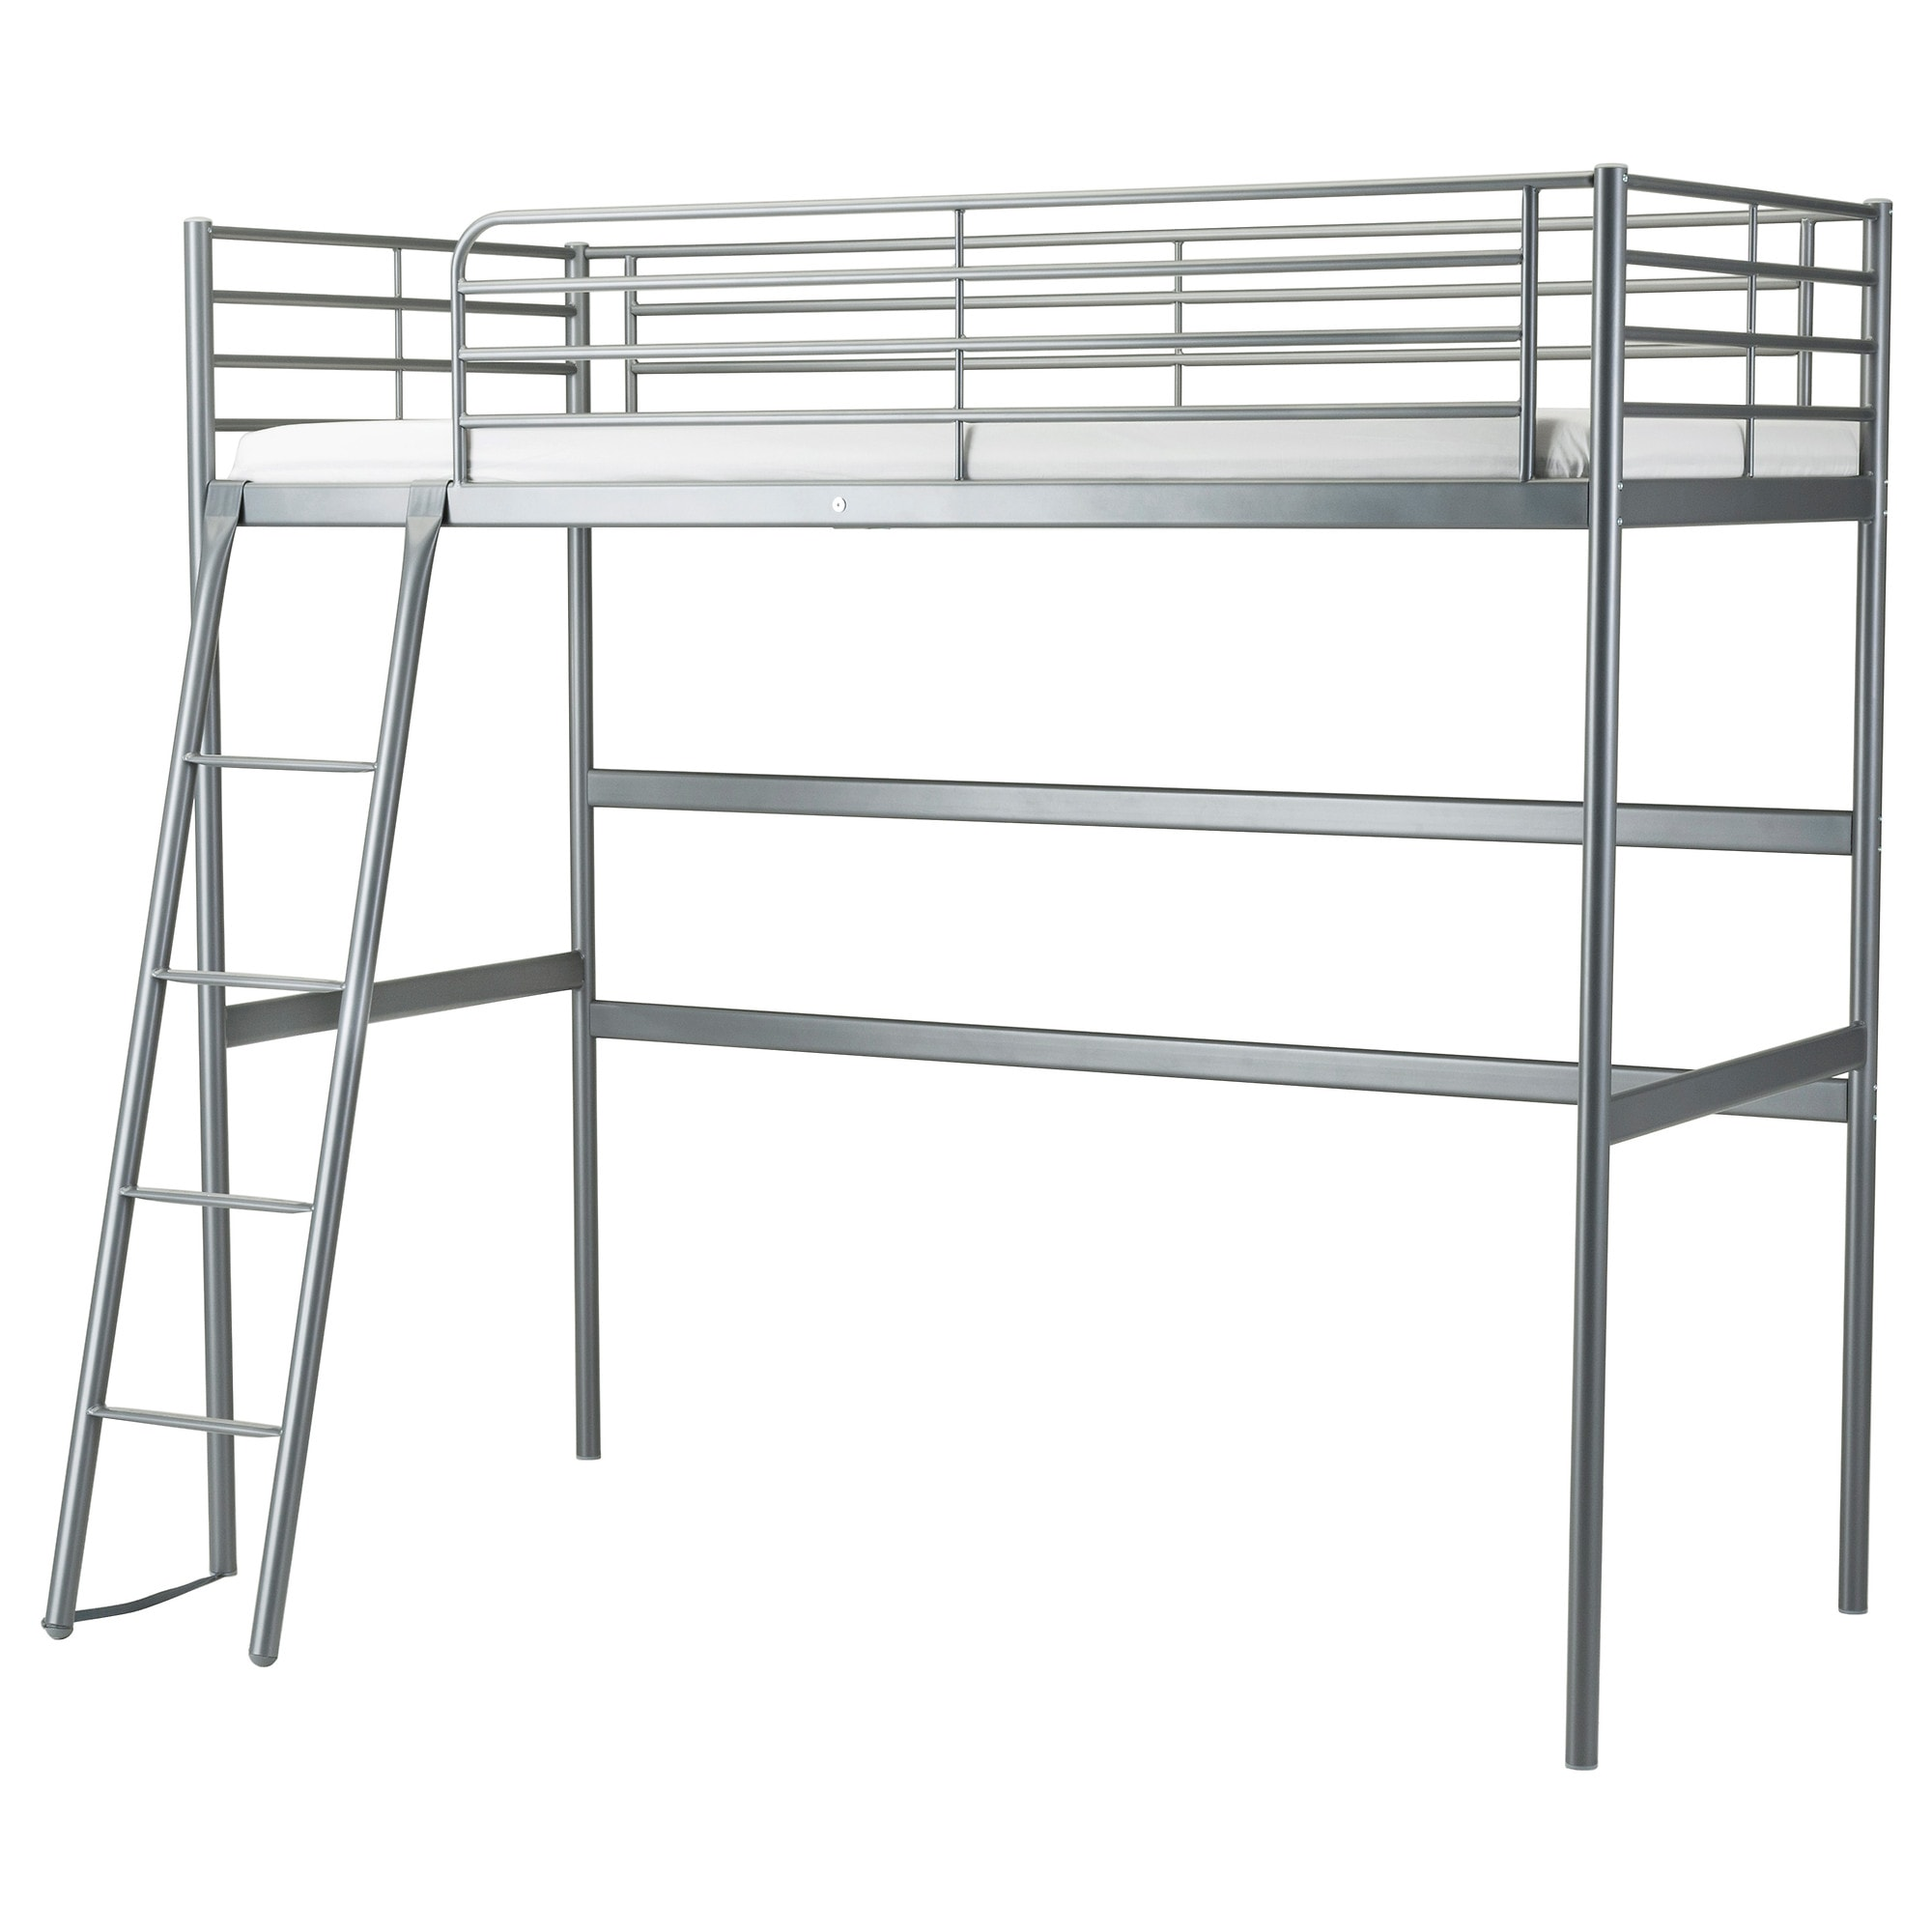 Bunk bed with desk ikea - Bunk Bed With Desk Ikea 3